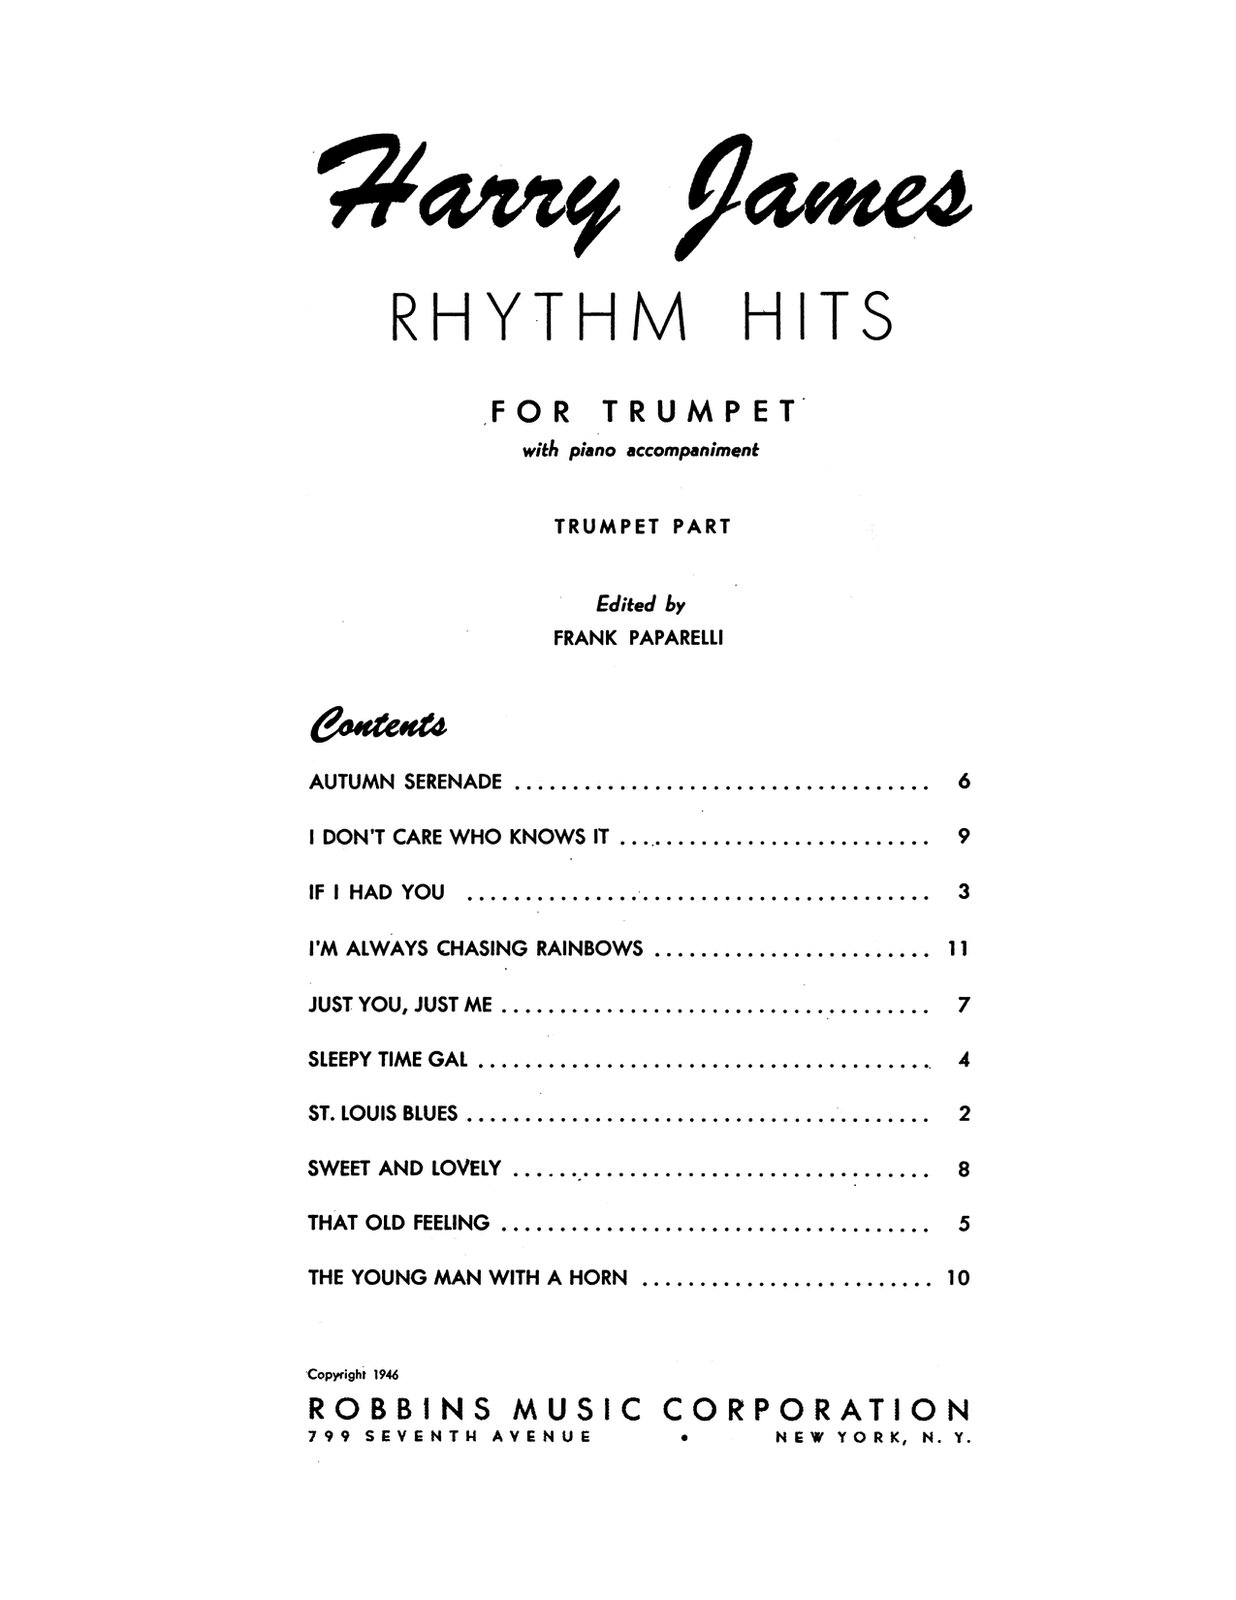 James, Rhythm Hits for Trumpet-p03